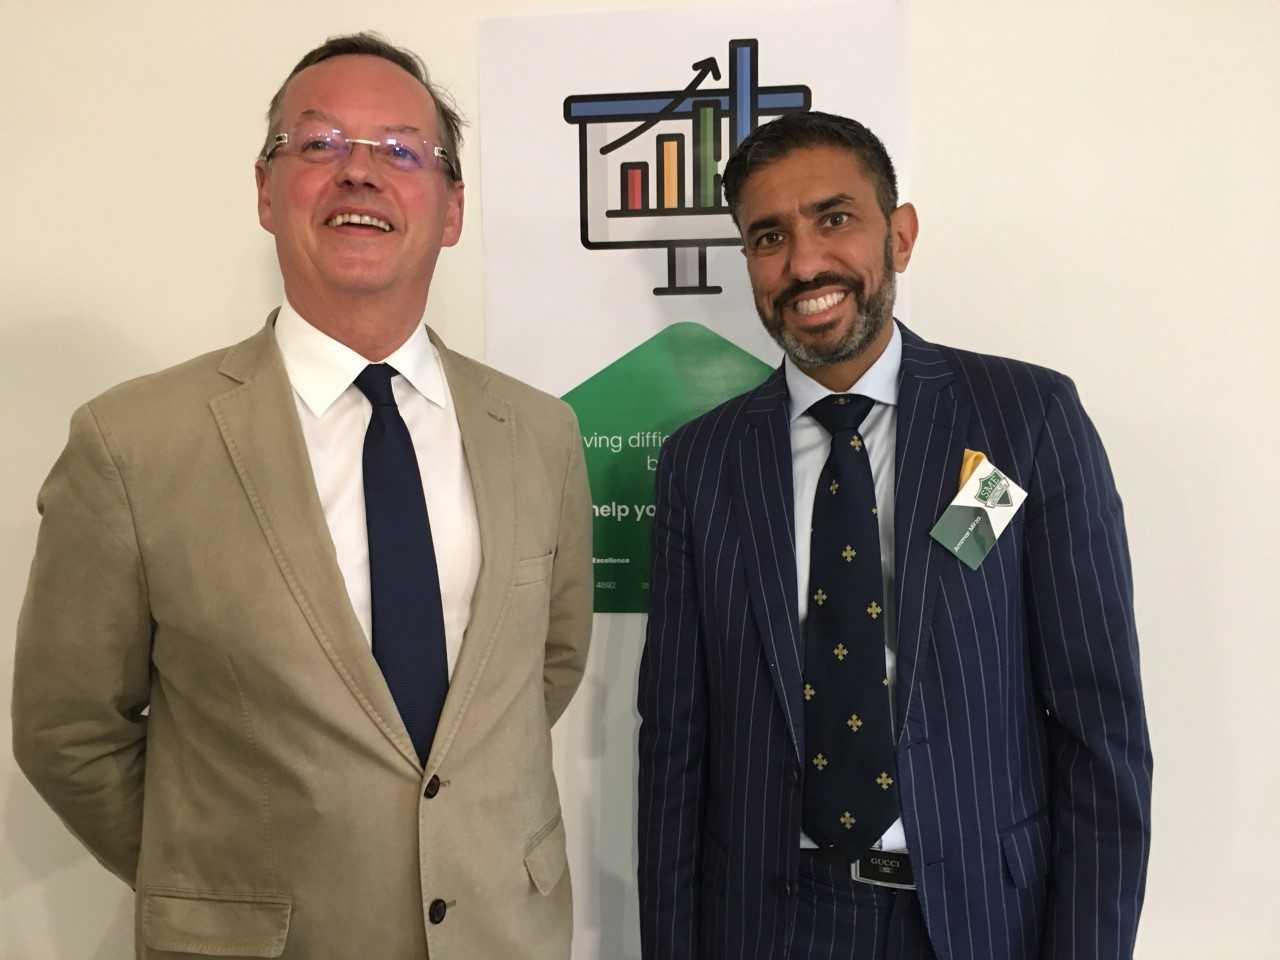 Ammar Mirza (right), who has set up an SME Centre of Excellence in Ponteland, pictured with Coun. Peter Jackson.